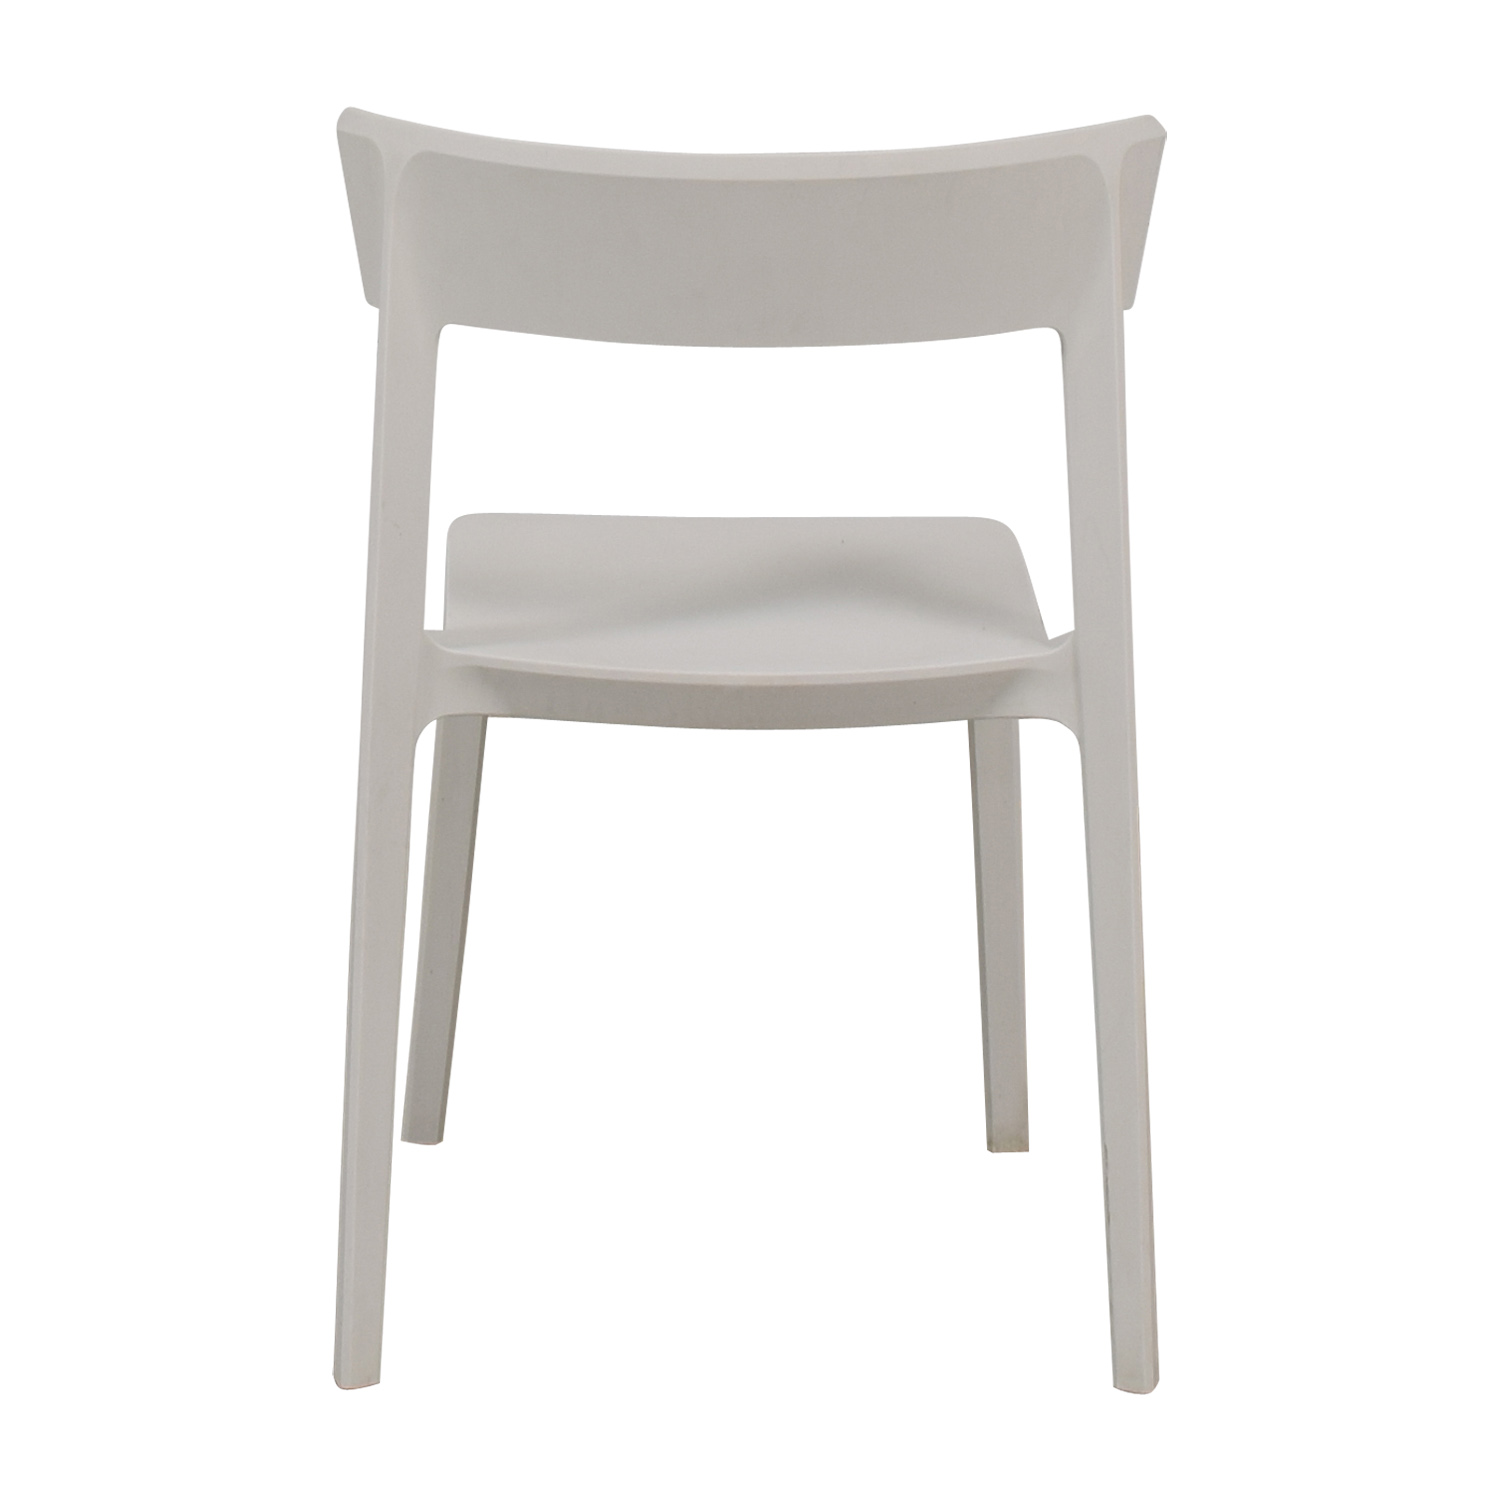 Calligaris Calligaris Skin White Chair discount